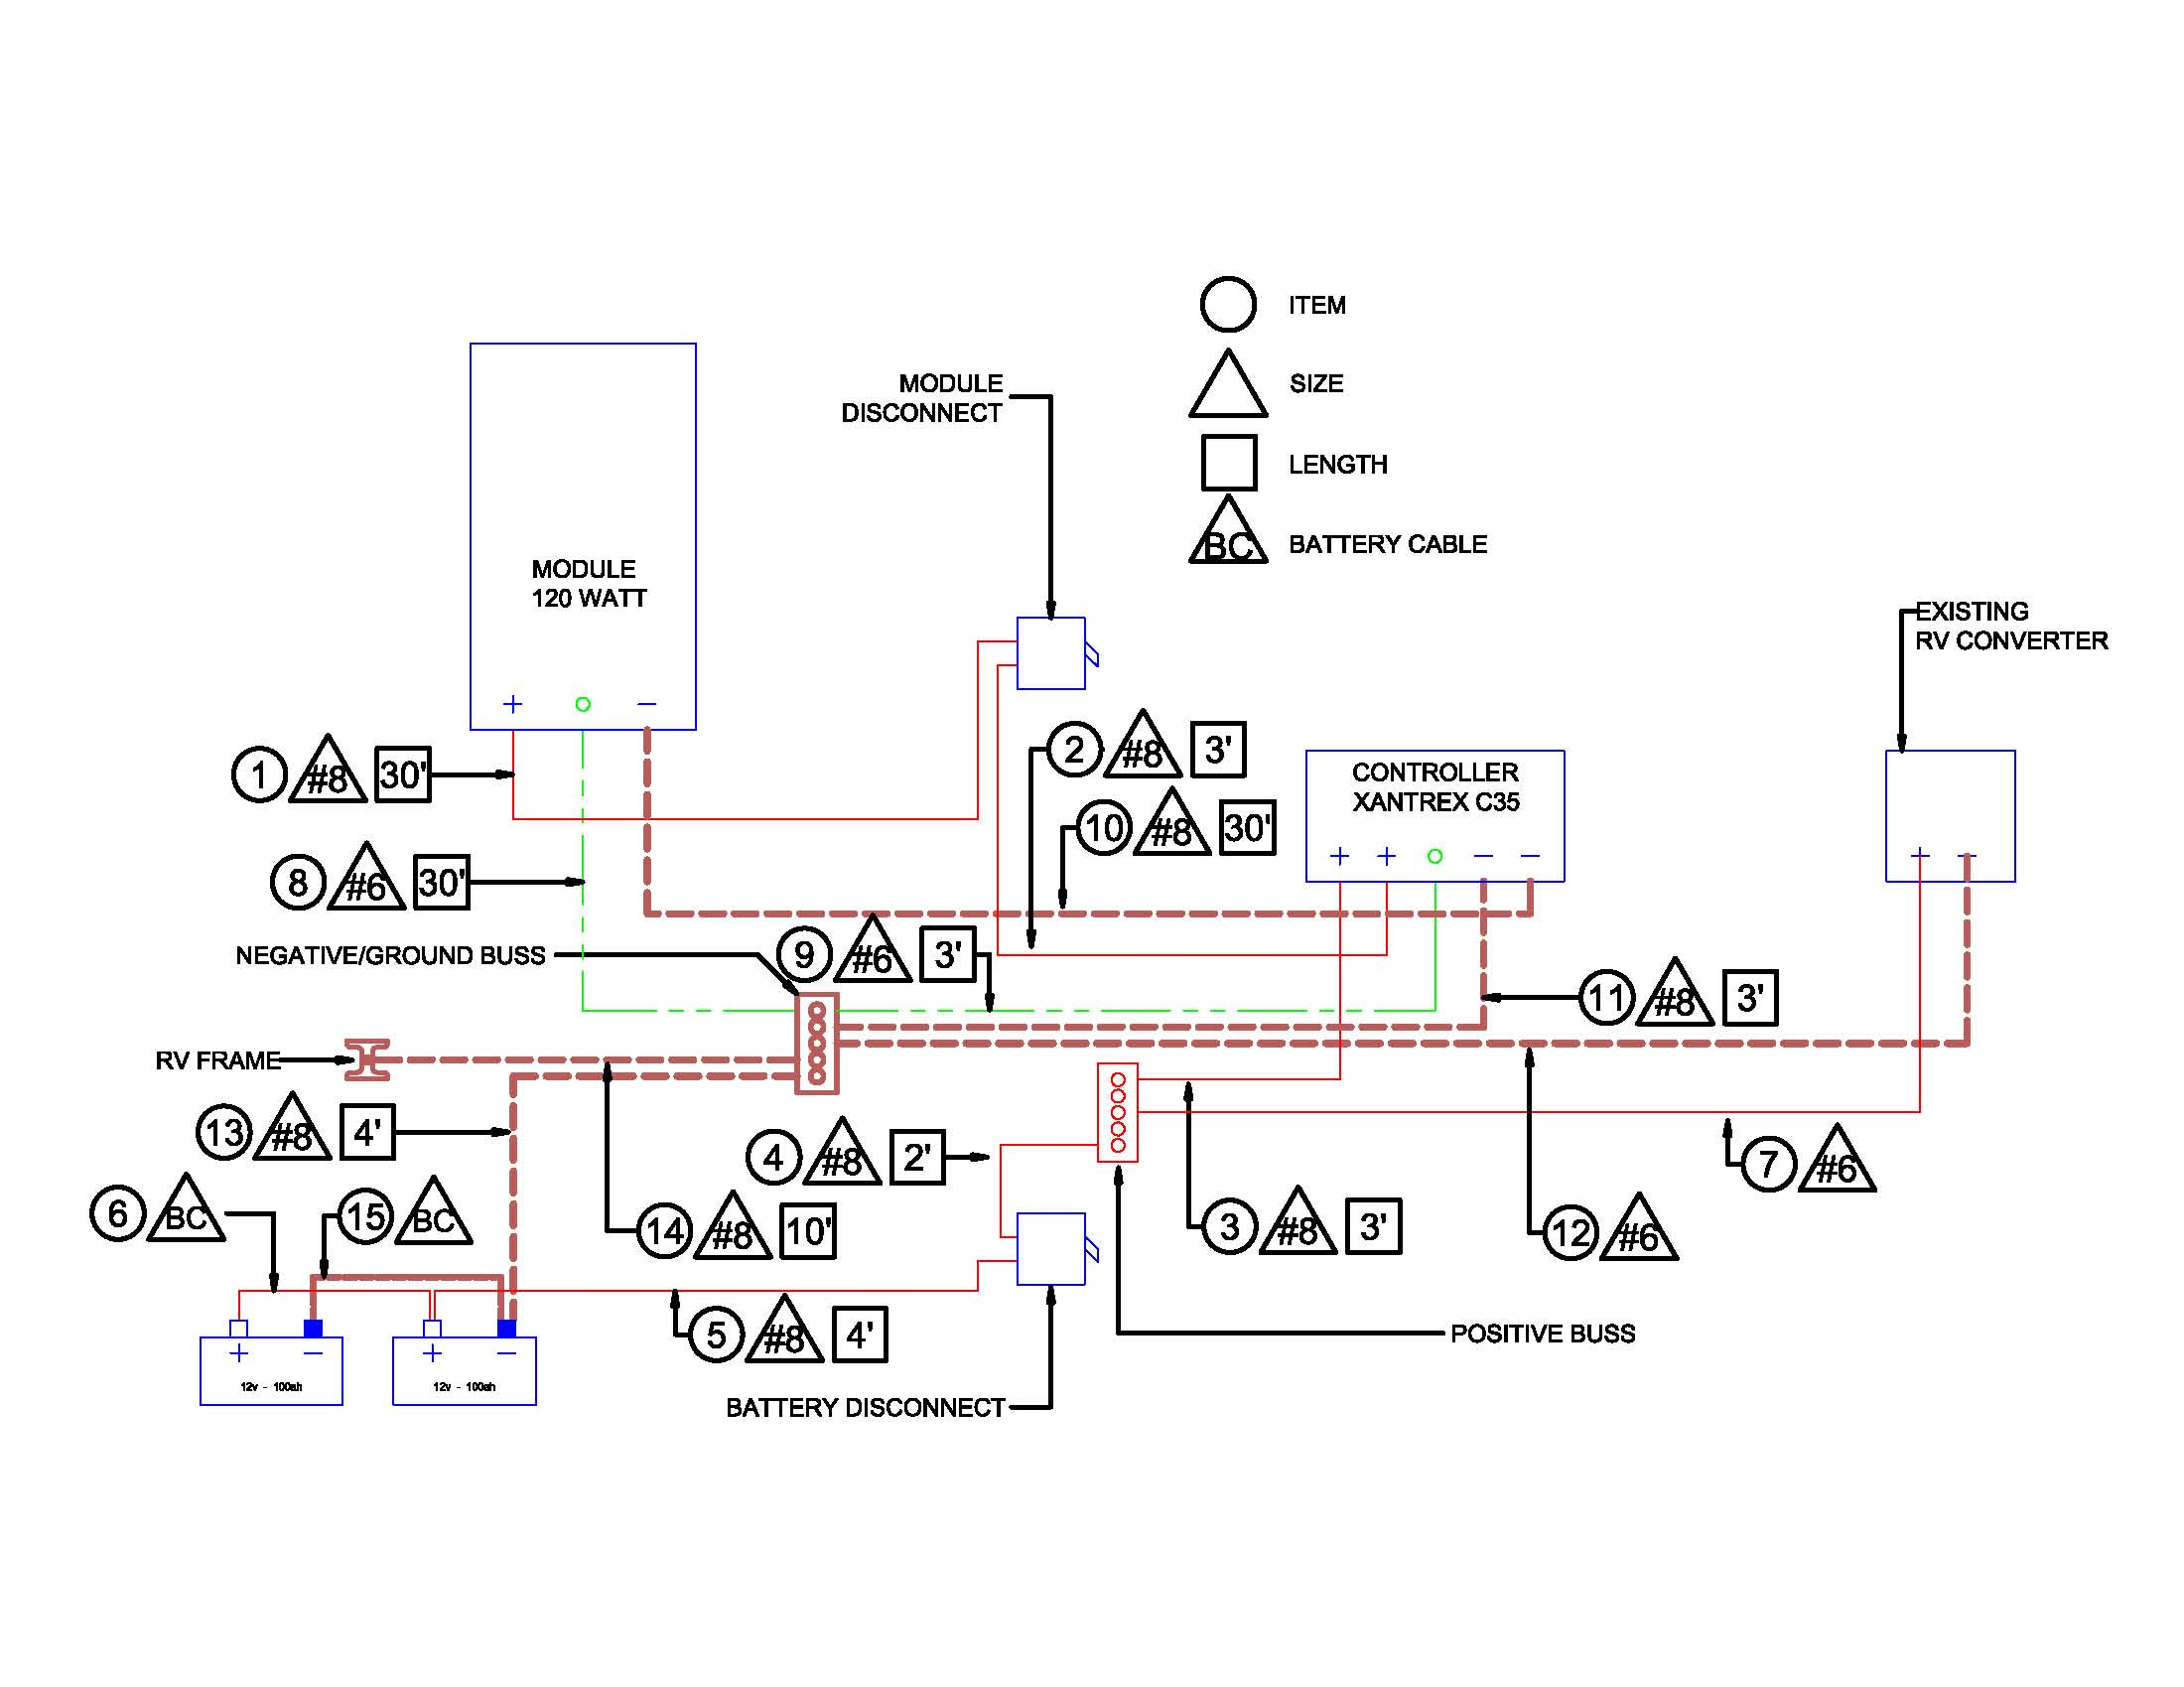 Wfco 8955 Wiring Diagram 24 Images Rv Converter Please Review Comment Northernarizona Windandsun 82 At